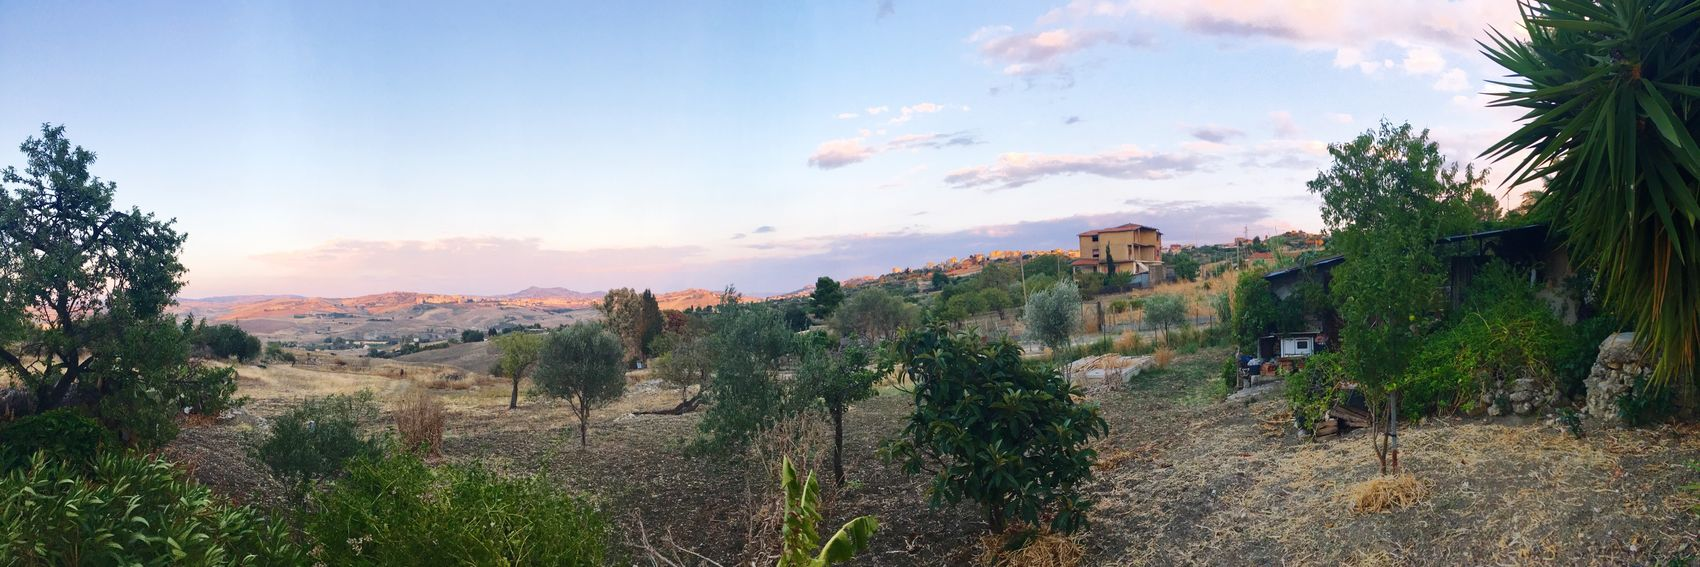 Agrigento August Showcase Rustic Sicily IPhone Photography Home Is Where The Art Is Same But Different End Of The Day Montaperto Agrigento Sicily Montaperto Agrigento Our World Home Is Where The Art Is. Summer EyeEm Nature Lover Panorama Hidden Gems  Travel